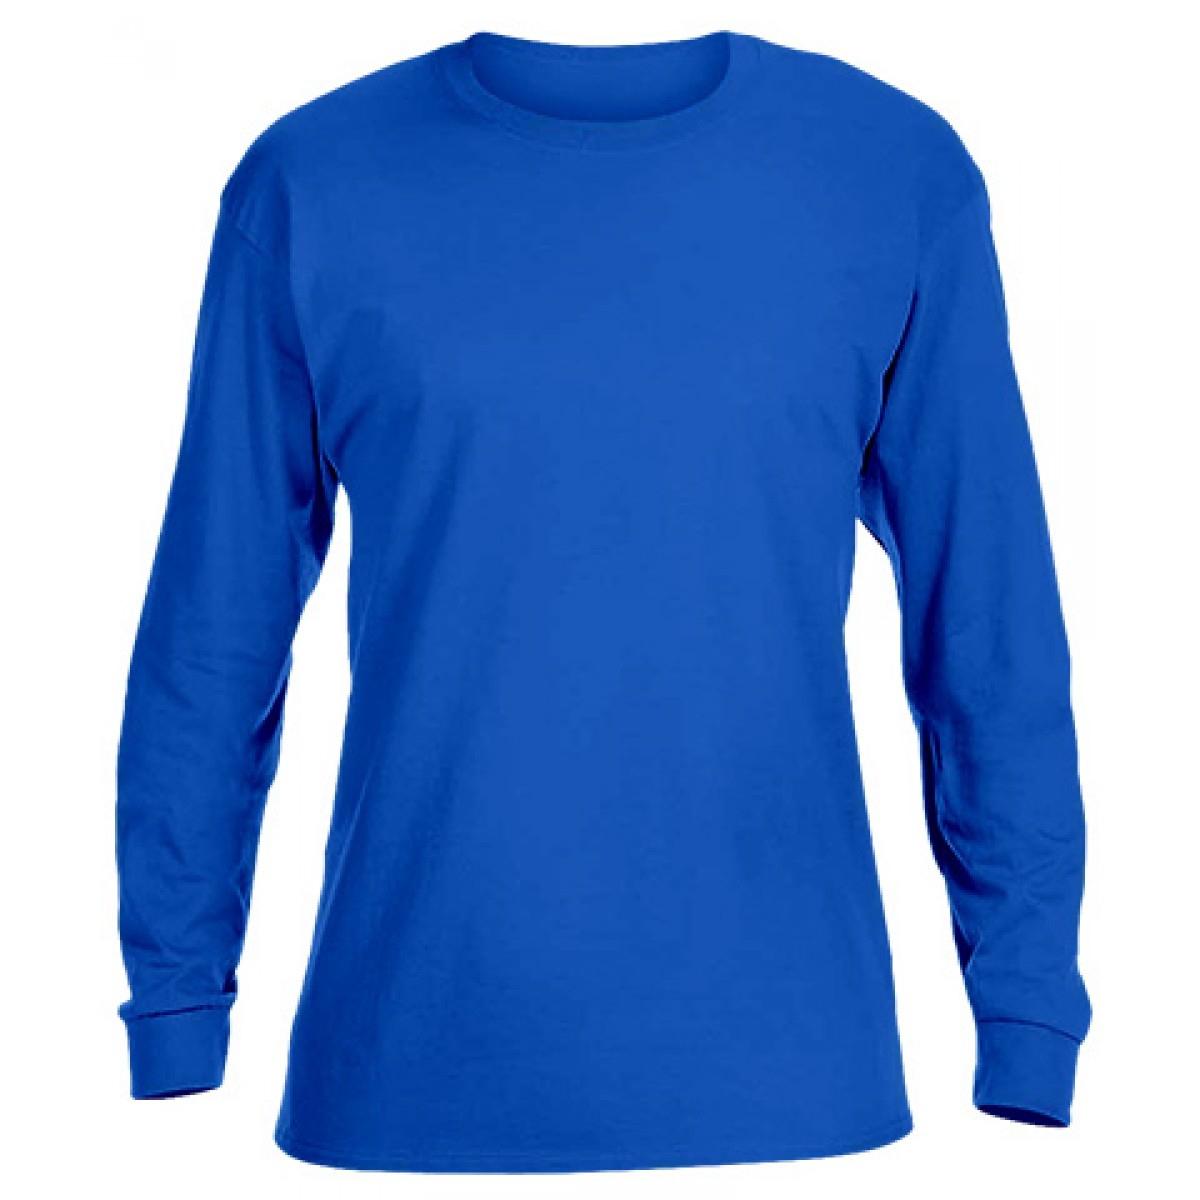 Basic Long Sleeve Crew Neck Royal Blue